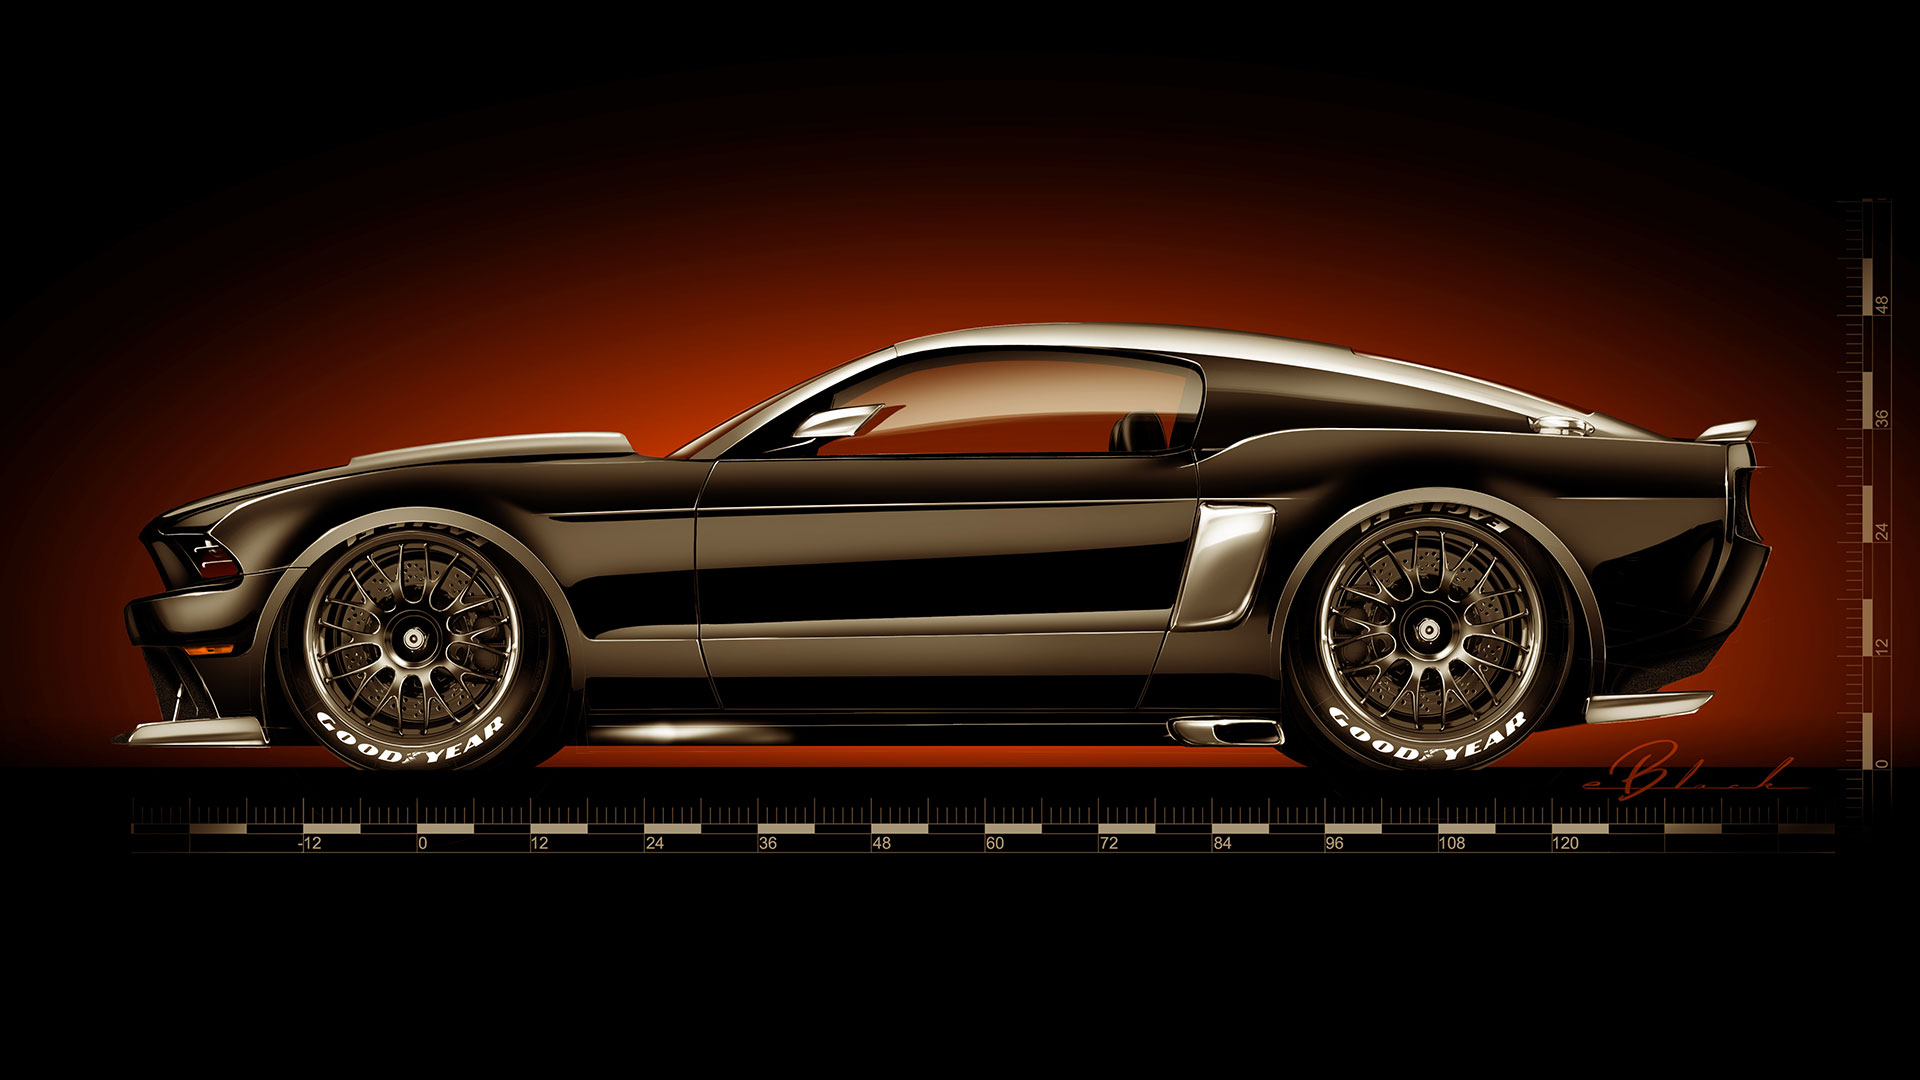 Ford Mustang by Hollywood Hot Rods